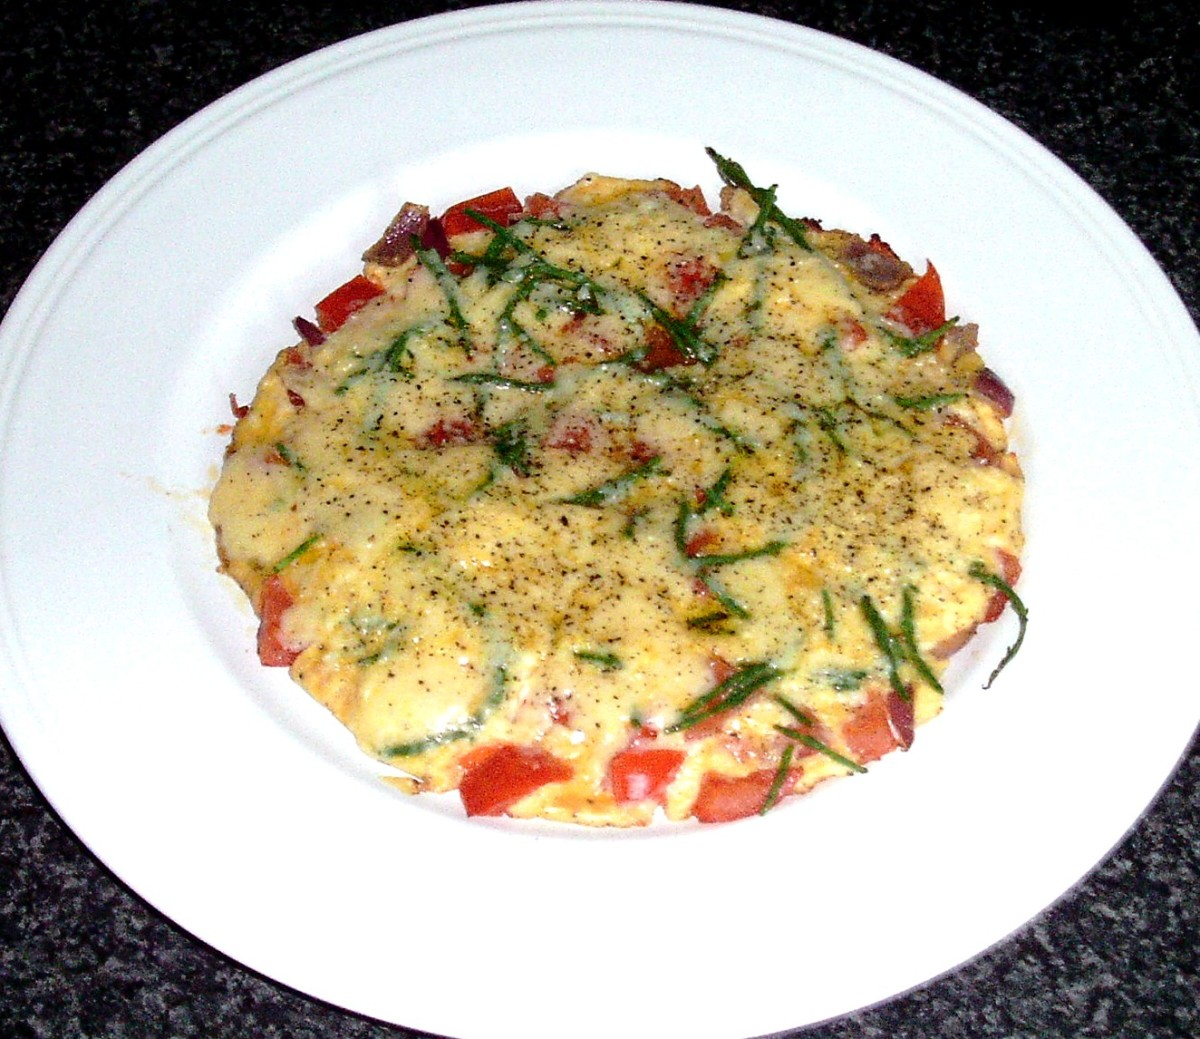 Samphire is made to garnish and season a tomato and red onion tortilla